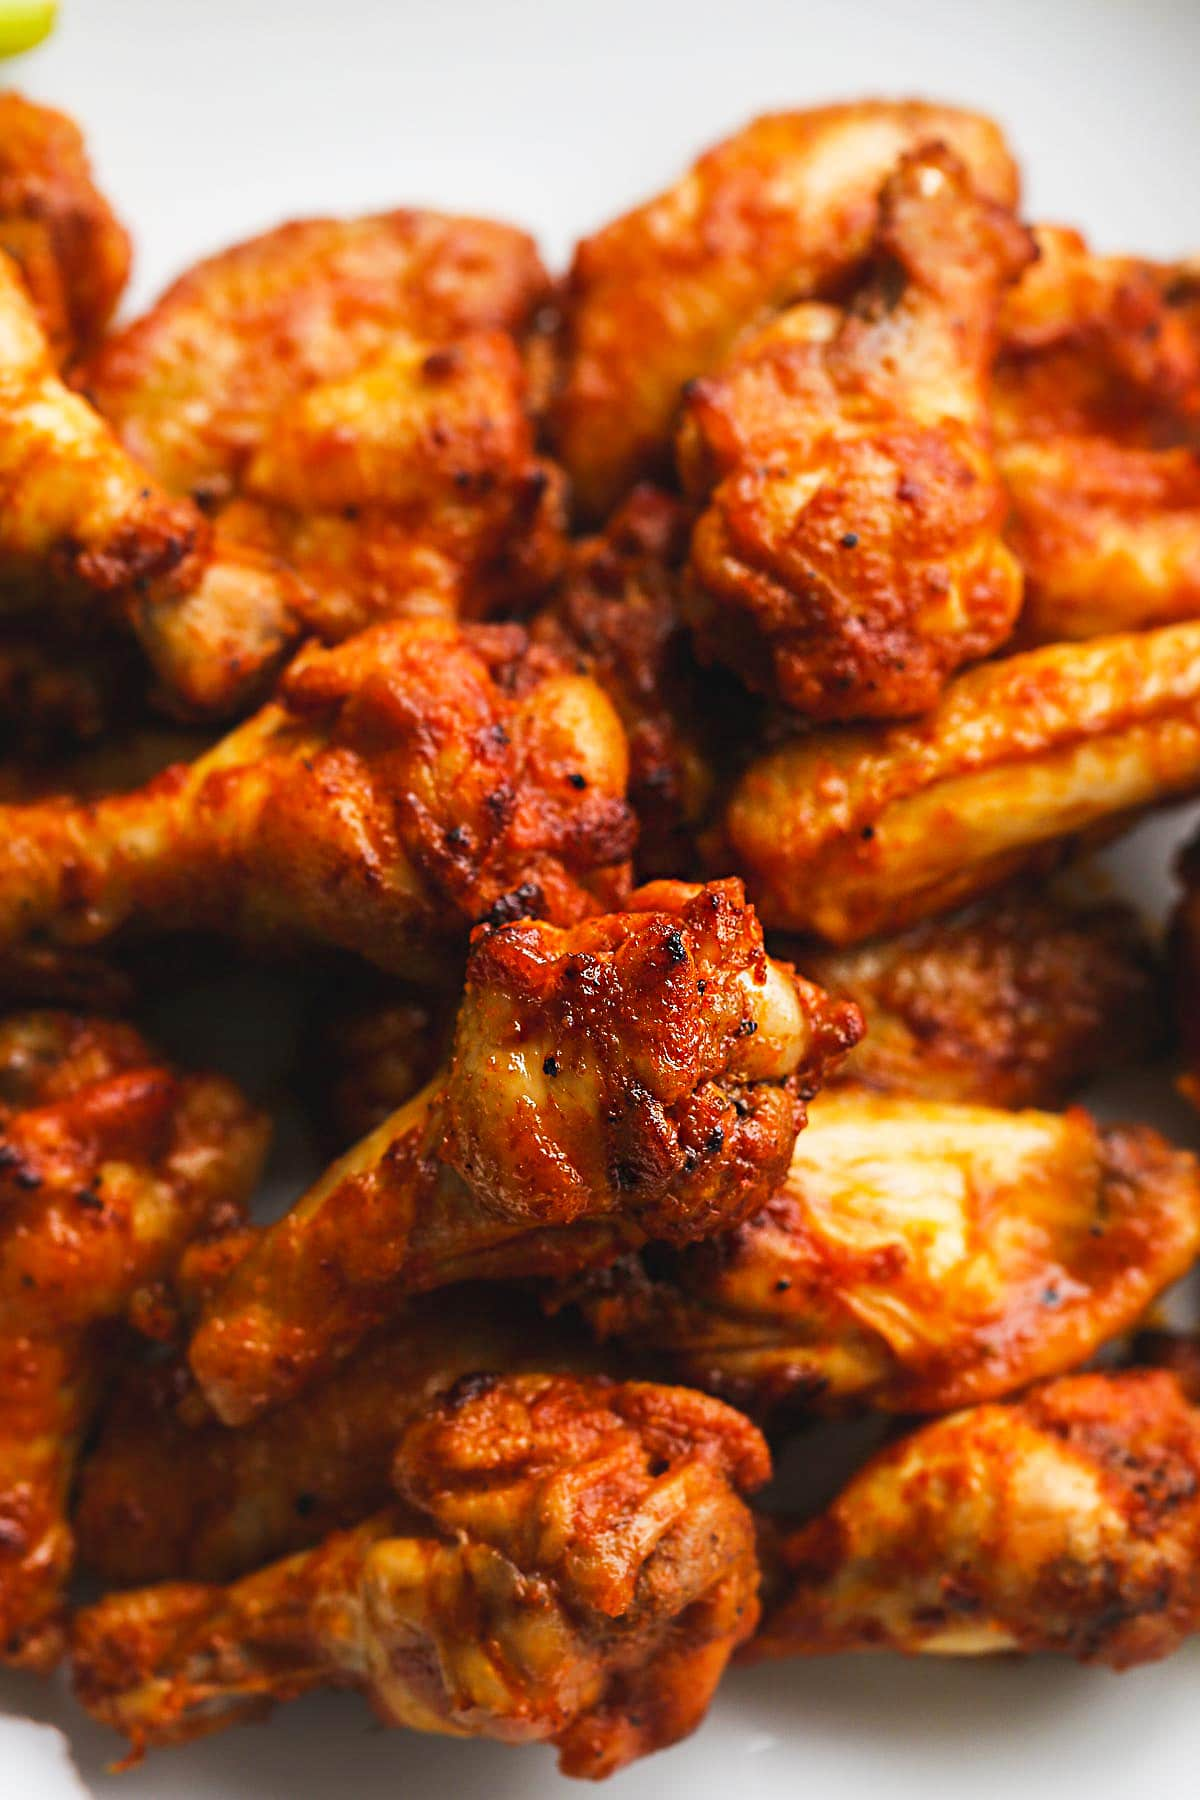 Crispy and perfectly cooked chicken wings that were made in the Instant Pot